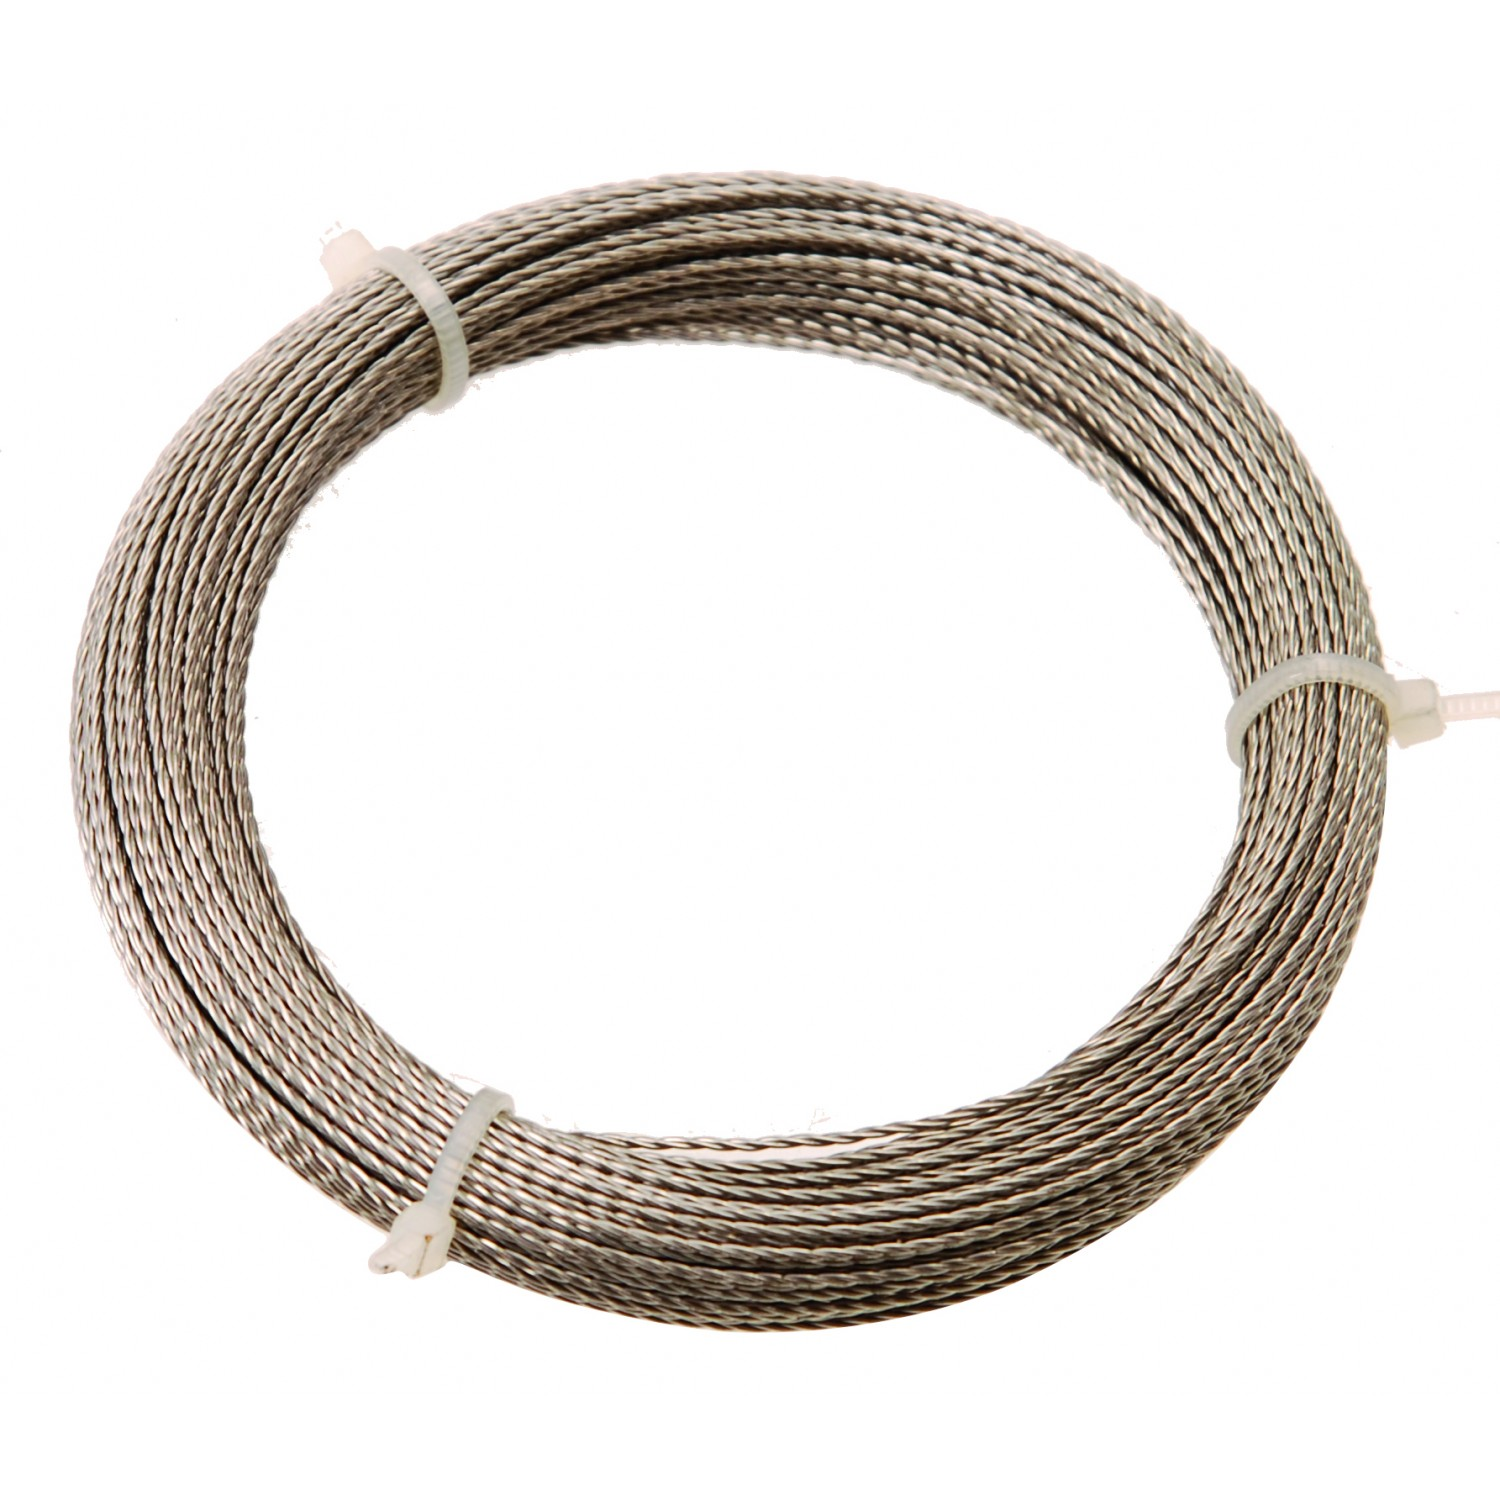 Automotive Glass Cutting Wire 25 M Prooftools